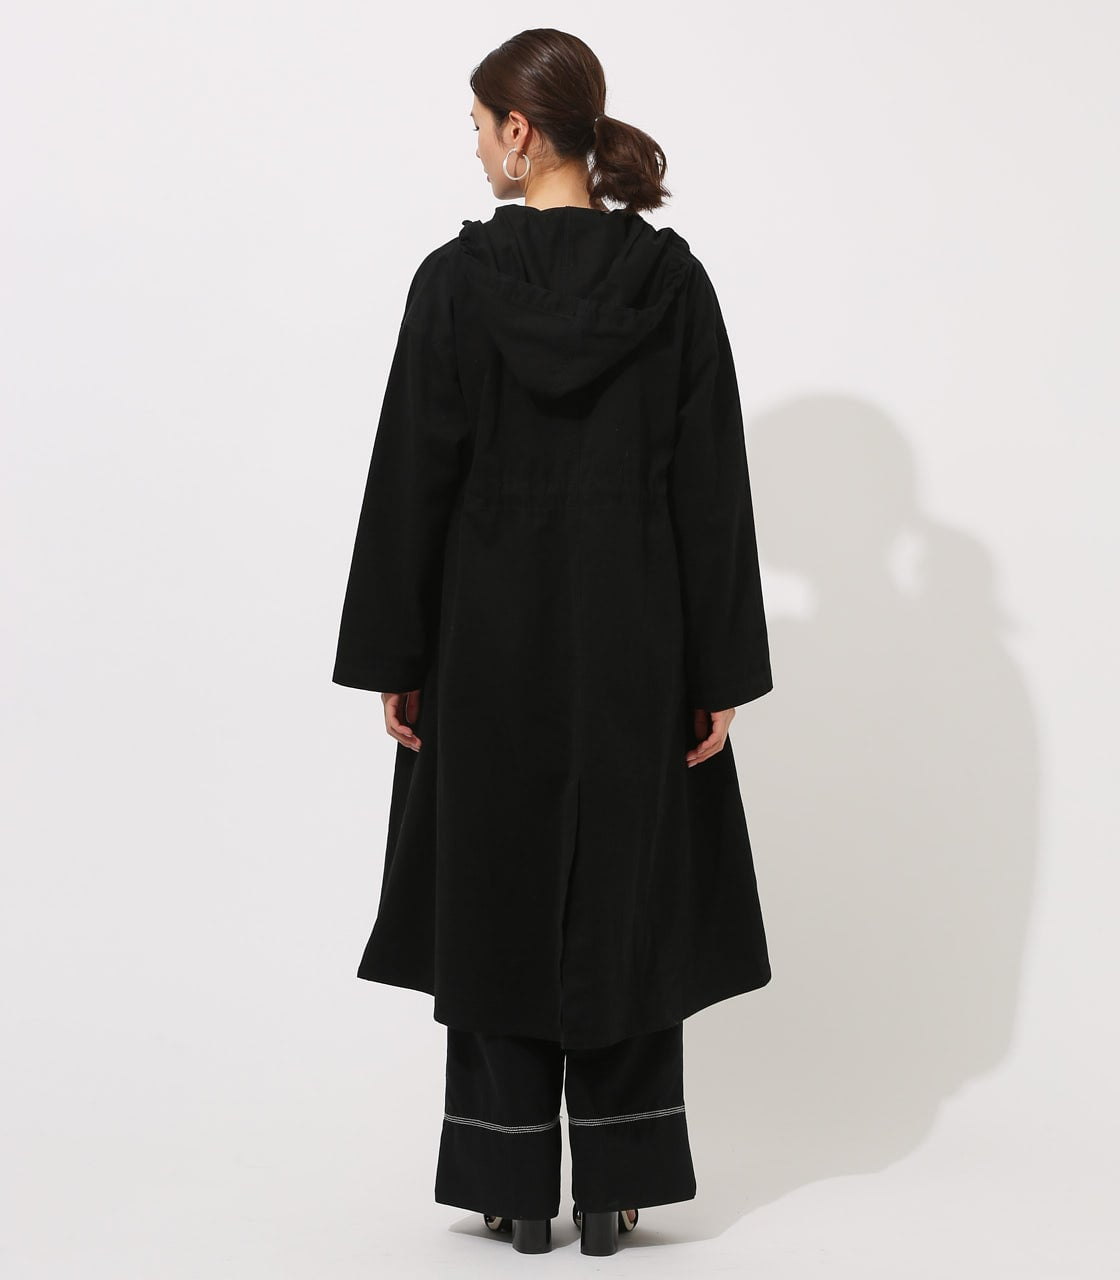 【AZUL BY MOUSSY】LOOSE MODS COAT 【MOOK49掲載 90044】 詳細画像 BLK 7